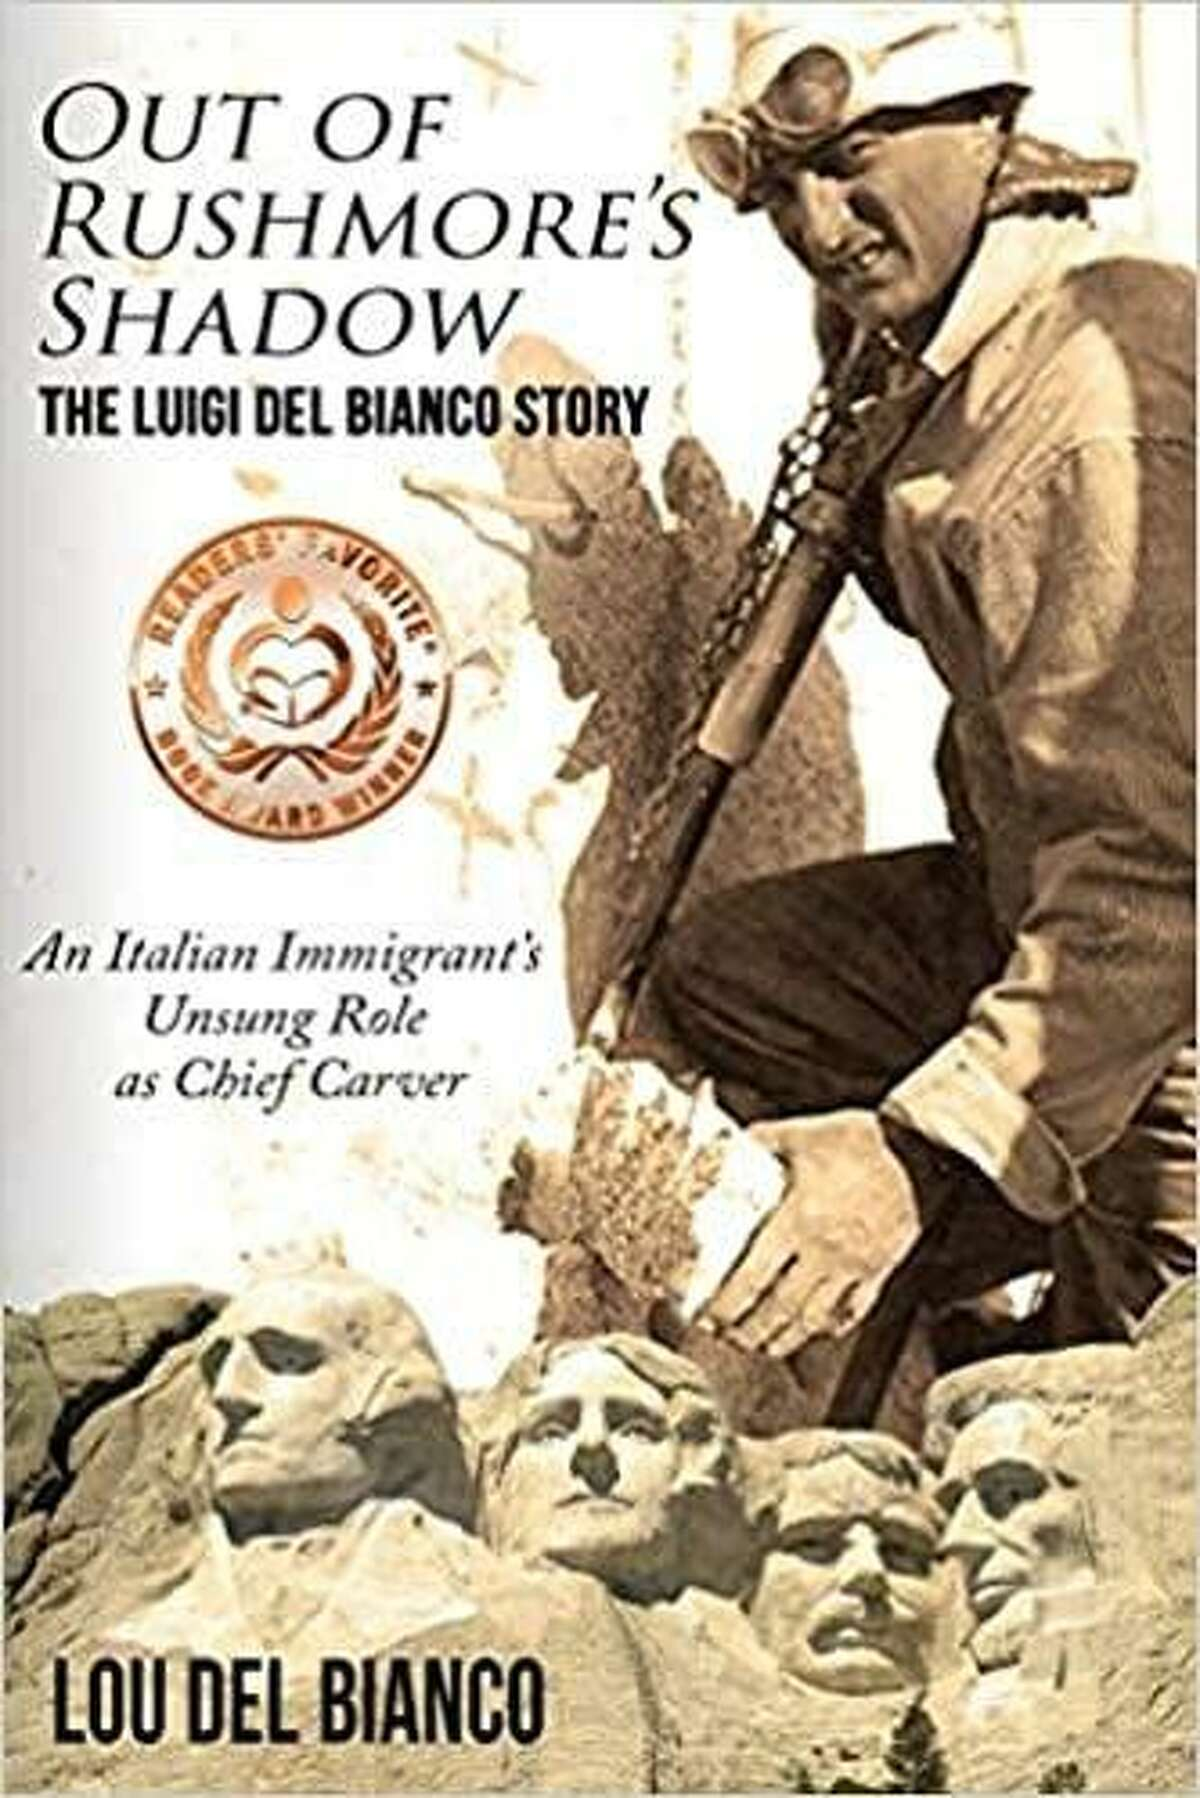 Lou Del Bianco tells the story of his grandfather, Luigi Del Bianco, a chief carver of Mount Rushmore, in his book and one-man performance,